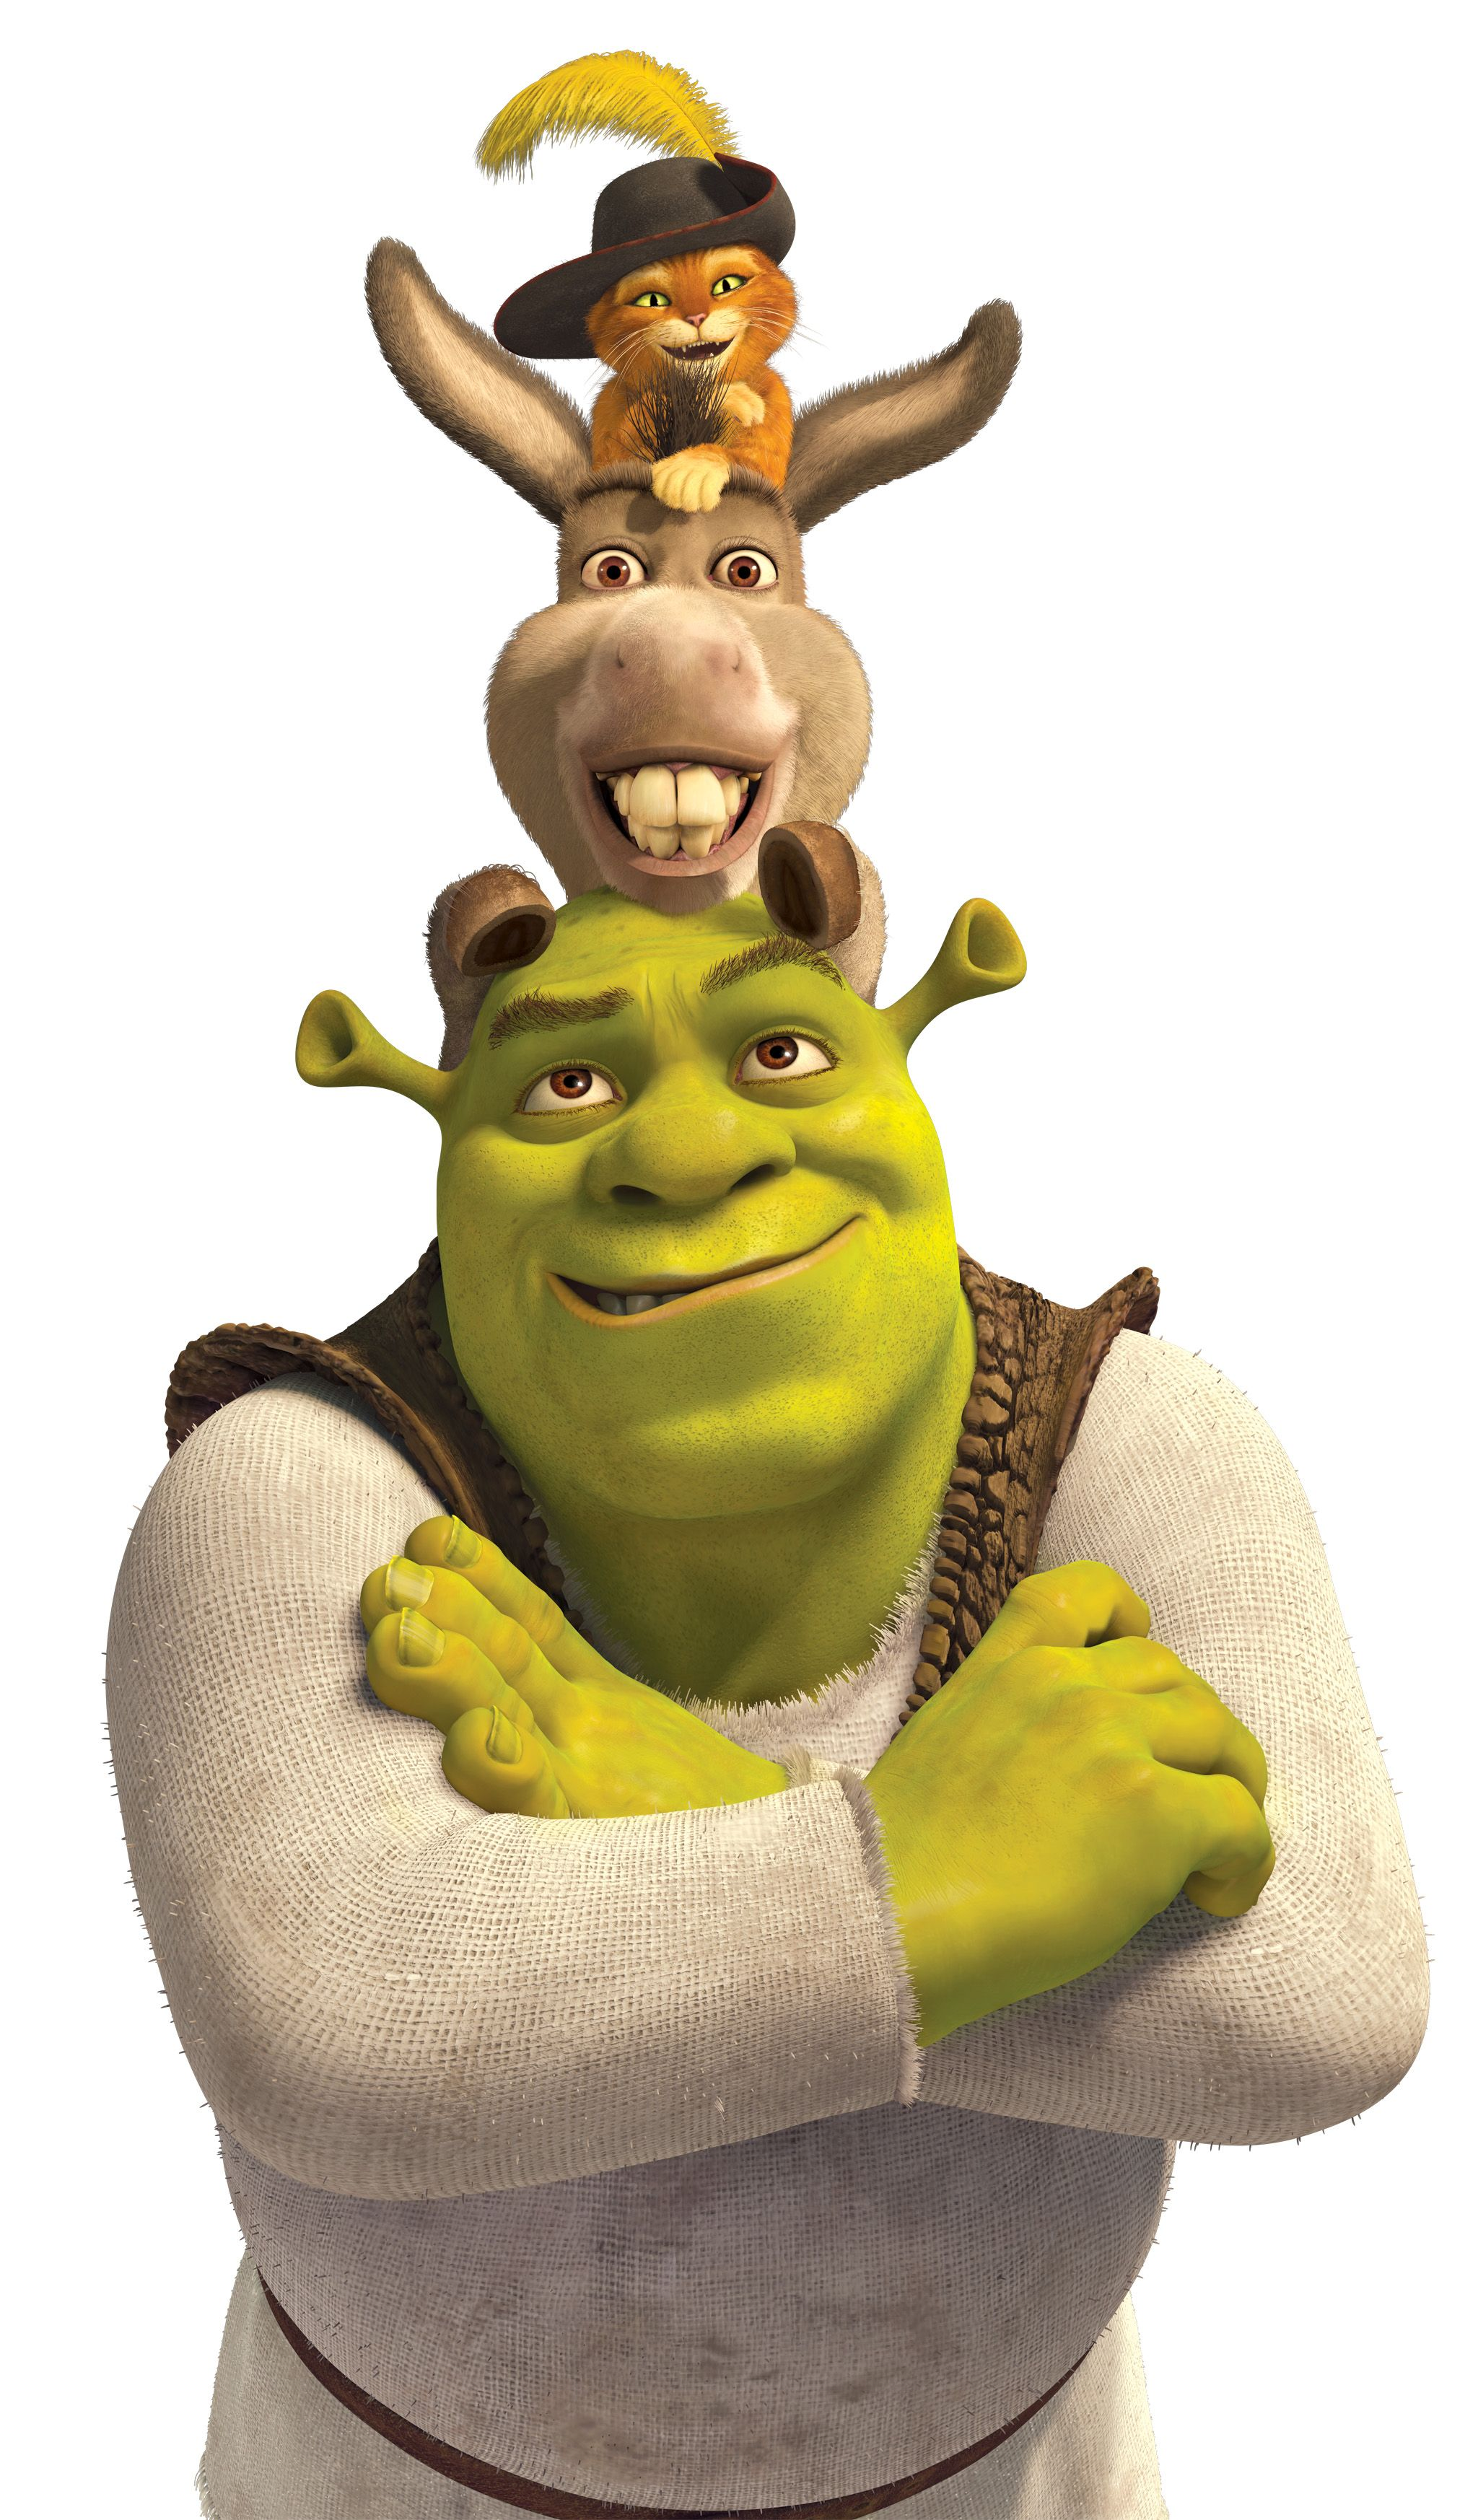 Characters of dreamworks d dreamworks animation photo pictures to pin - Dreamworks Gato Burro Y Shrek